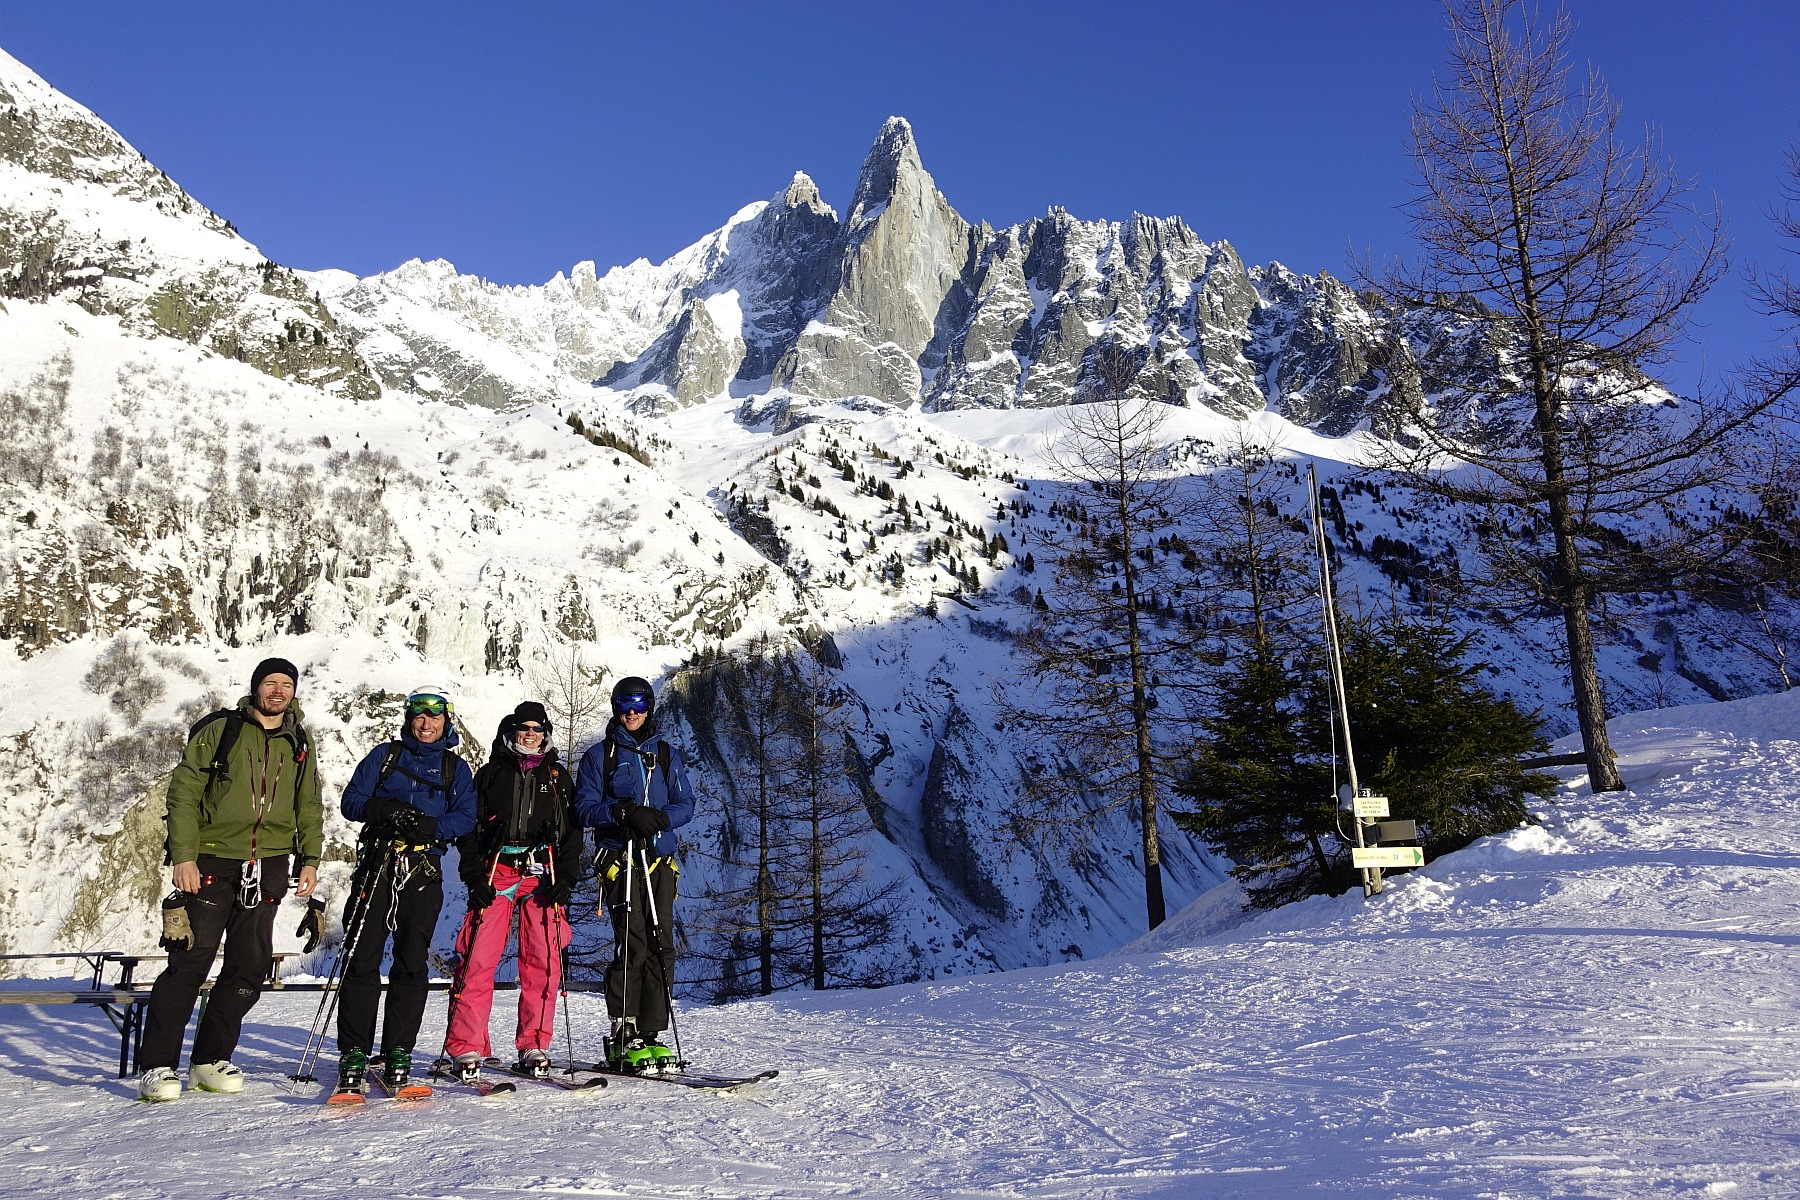 Vallée Blanche Guided Ski Touring Day, Feb 2018